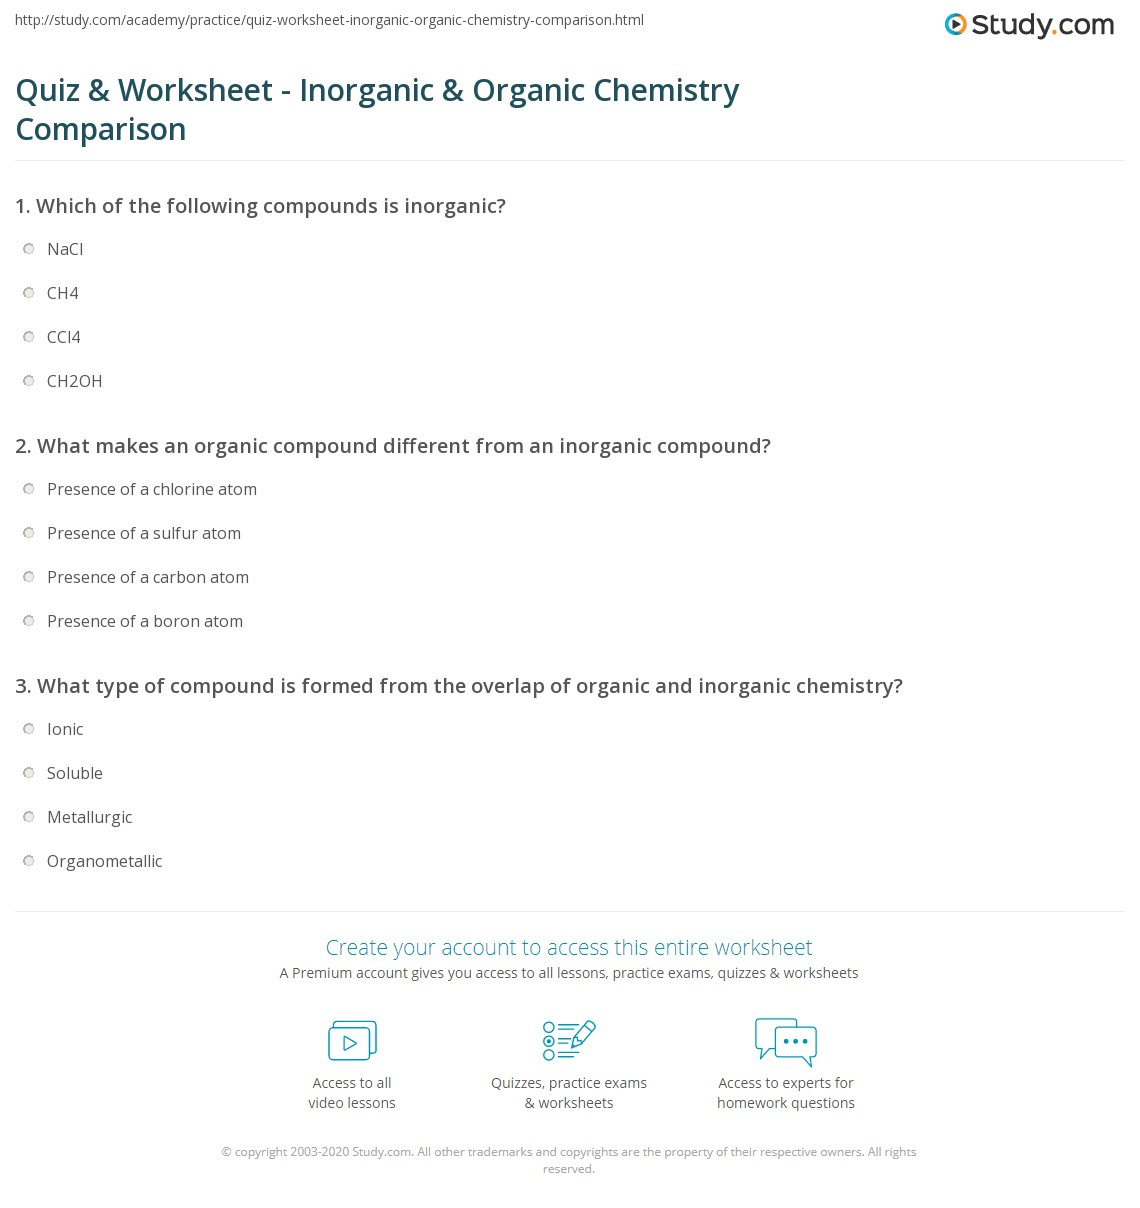 quiz worksheet inorganic organic chemistry comparison print inorganic vs organic chemistry worksheet